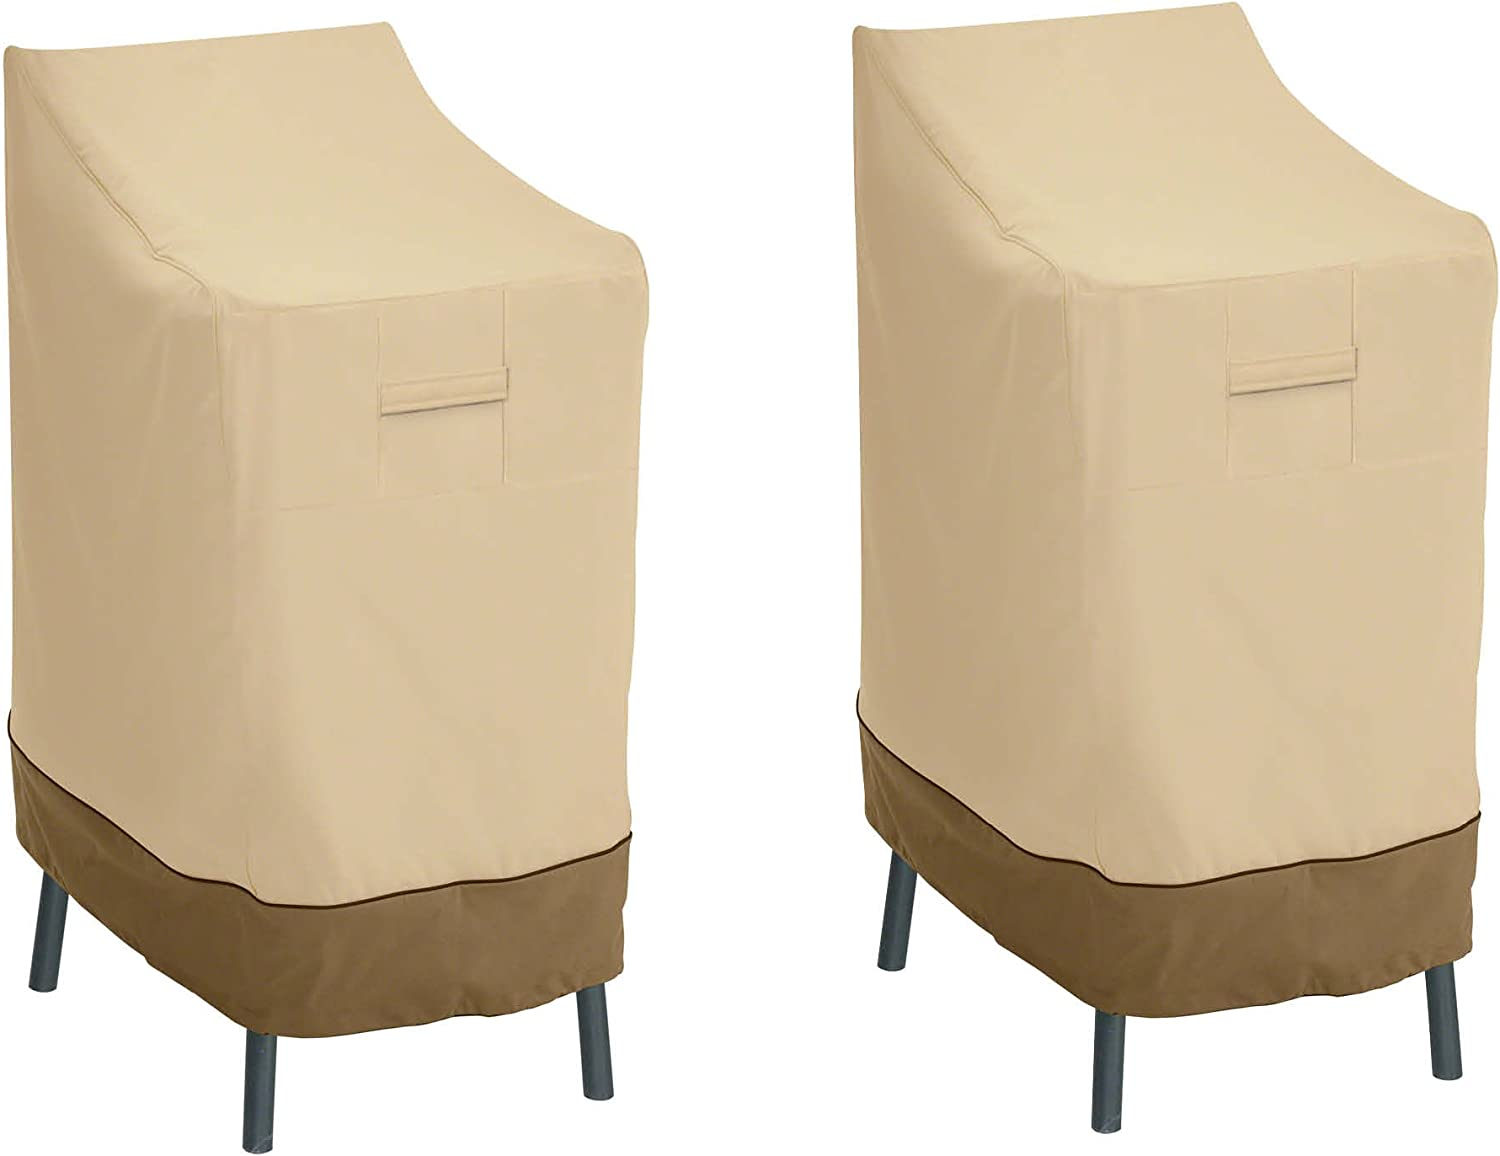 Classic Accessories Veranda Patio Bar Chair/Stool Cover (2-Pack)